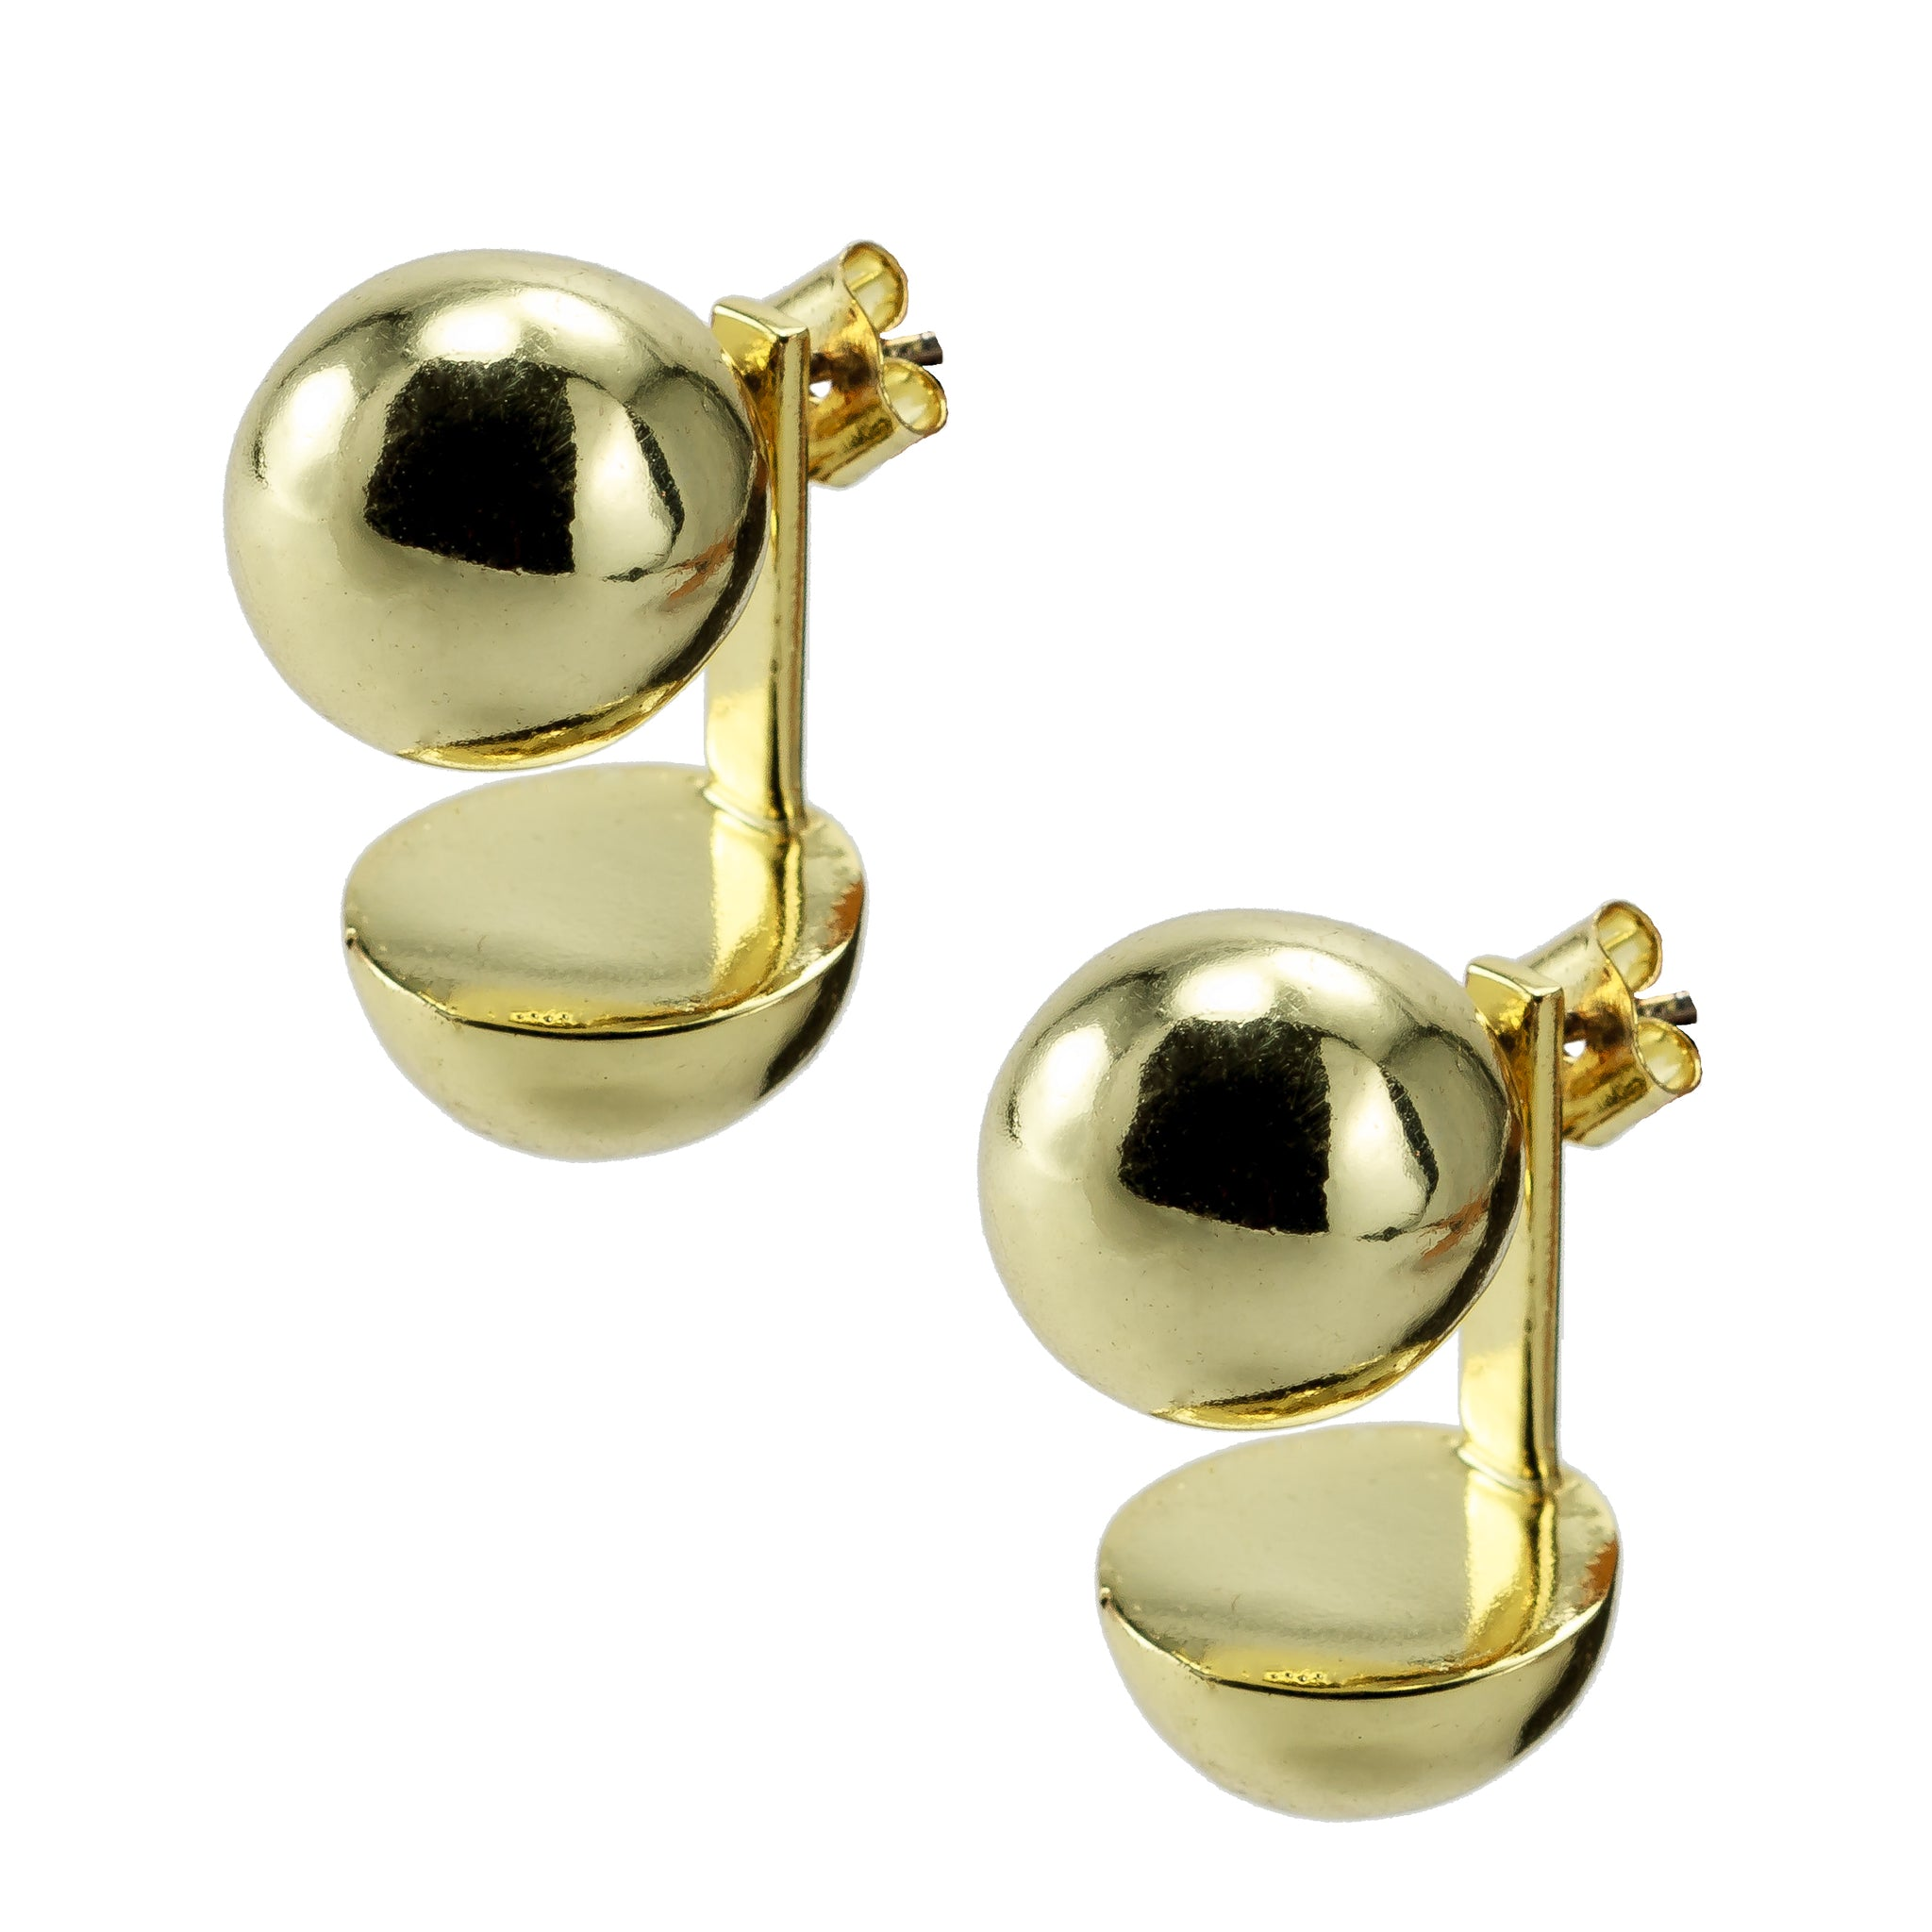 First Quarter Moon Earrings Gold